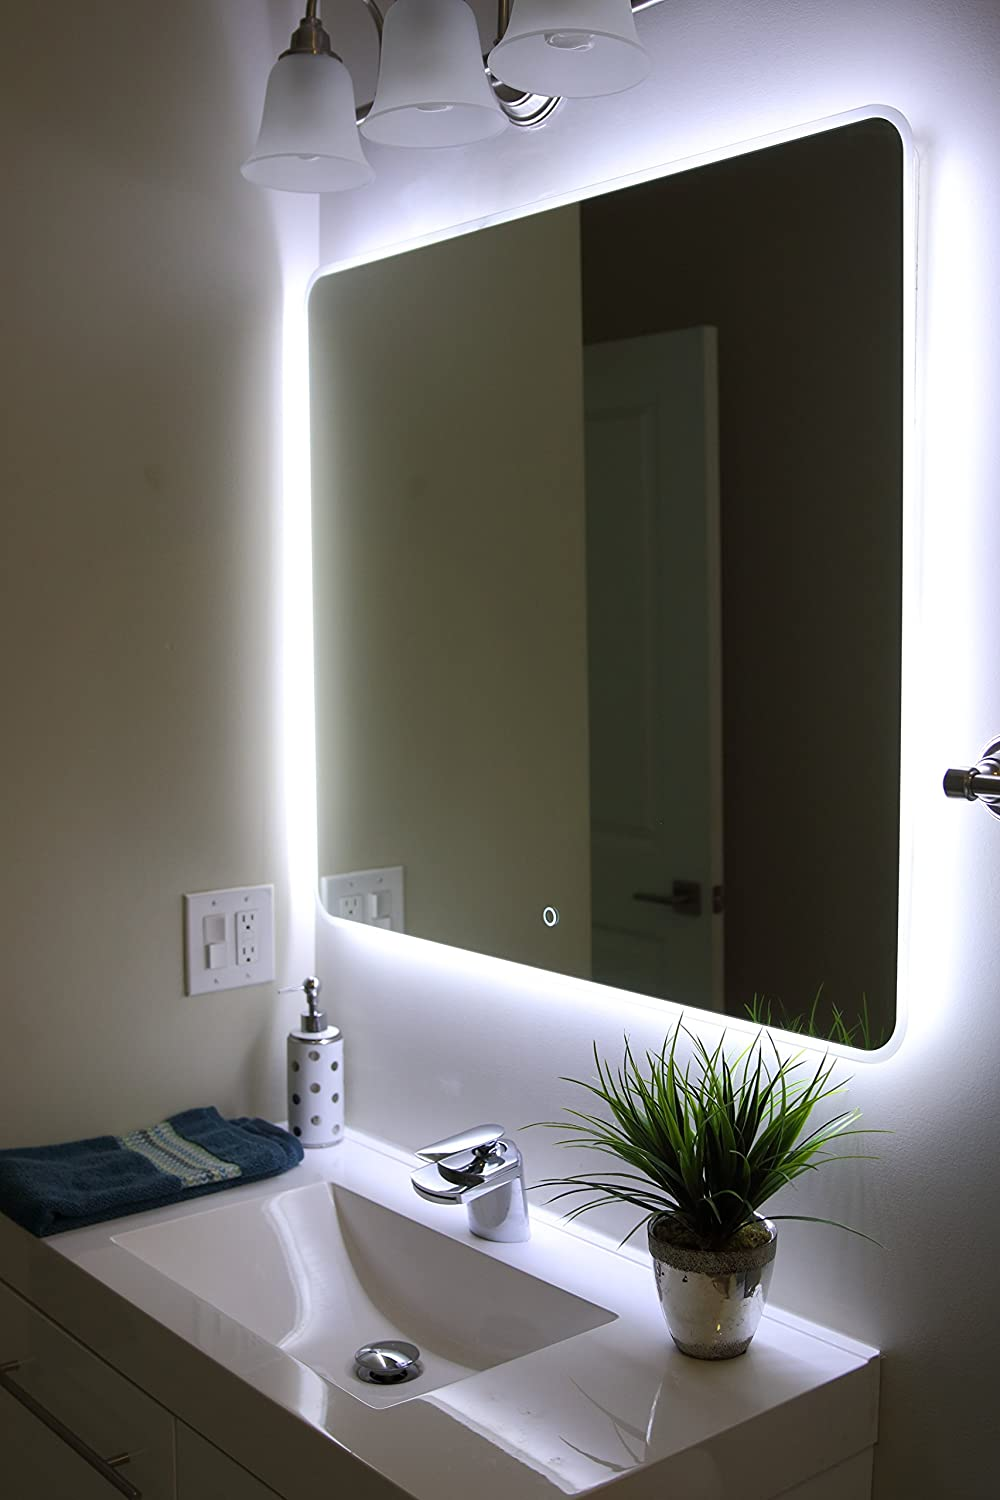 Amazon windbay backlit led light bathroom vanity sink mirror amazon windbay backlit led light bathroom vanity sink mirror illuminated mirror 36 home kitchen aloadofball Choice Image